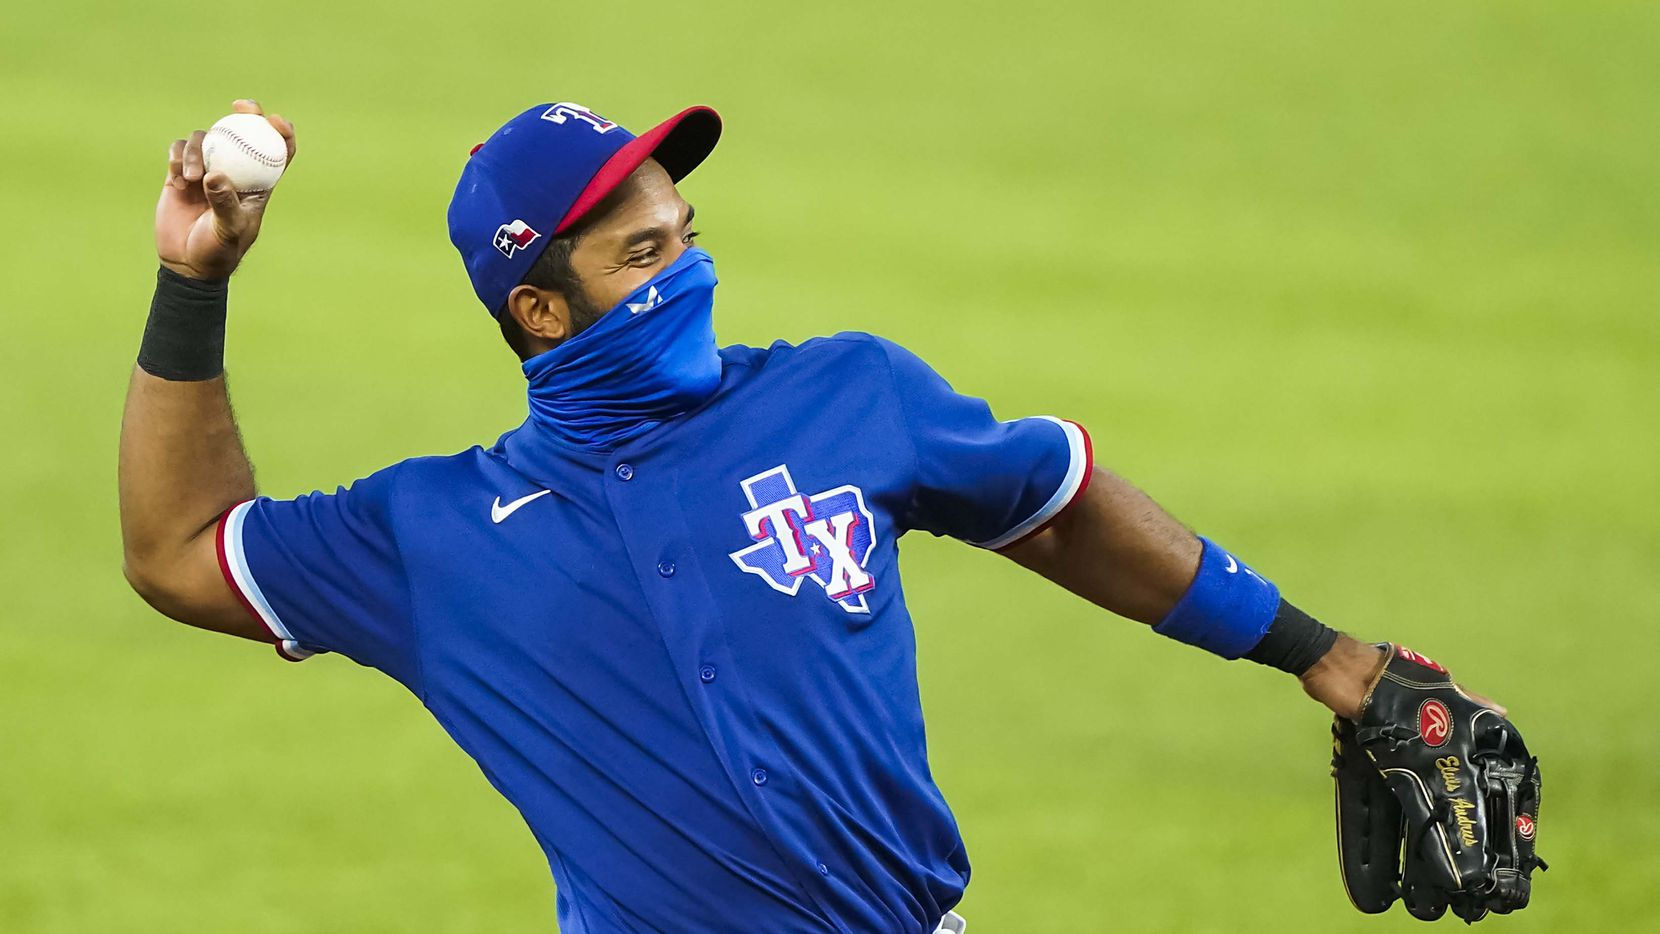 Texas Rangers shortstop Elvis Andrus wears a face mask as warms up before an exhibition game against the Colorado Rockies at Globe Life Field on Tuesday, July 21, 2020.